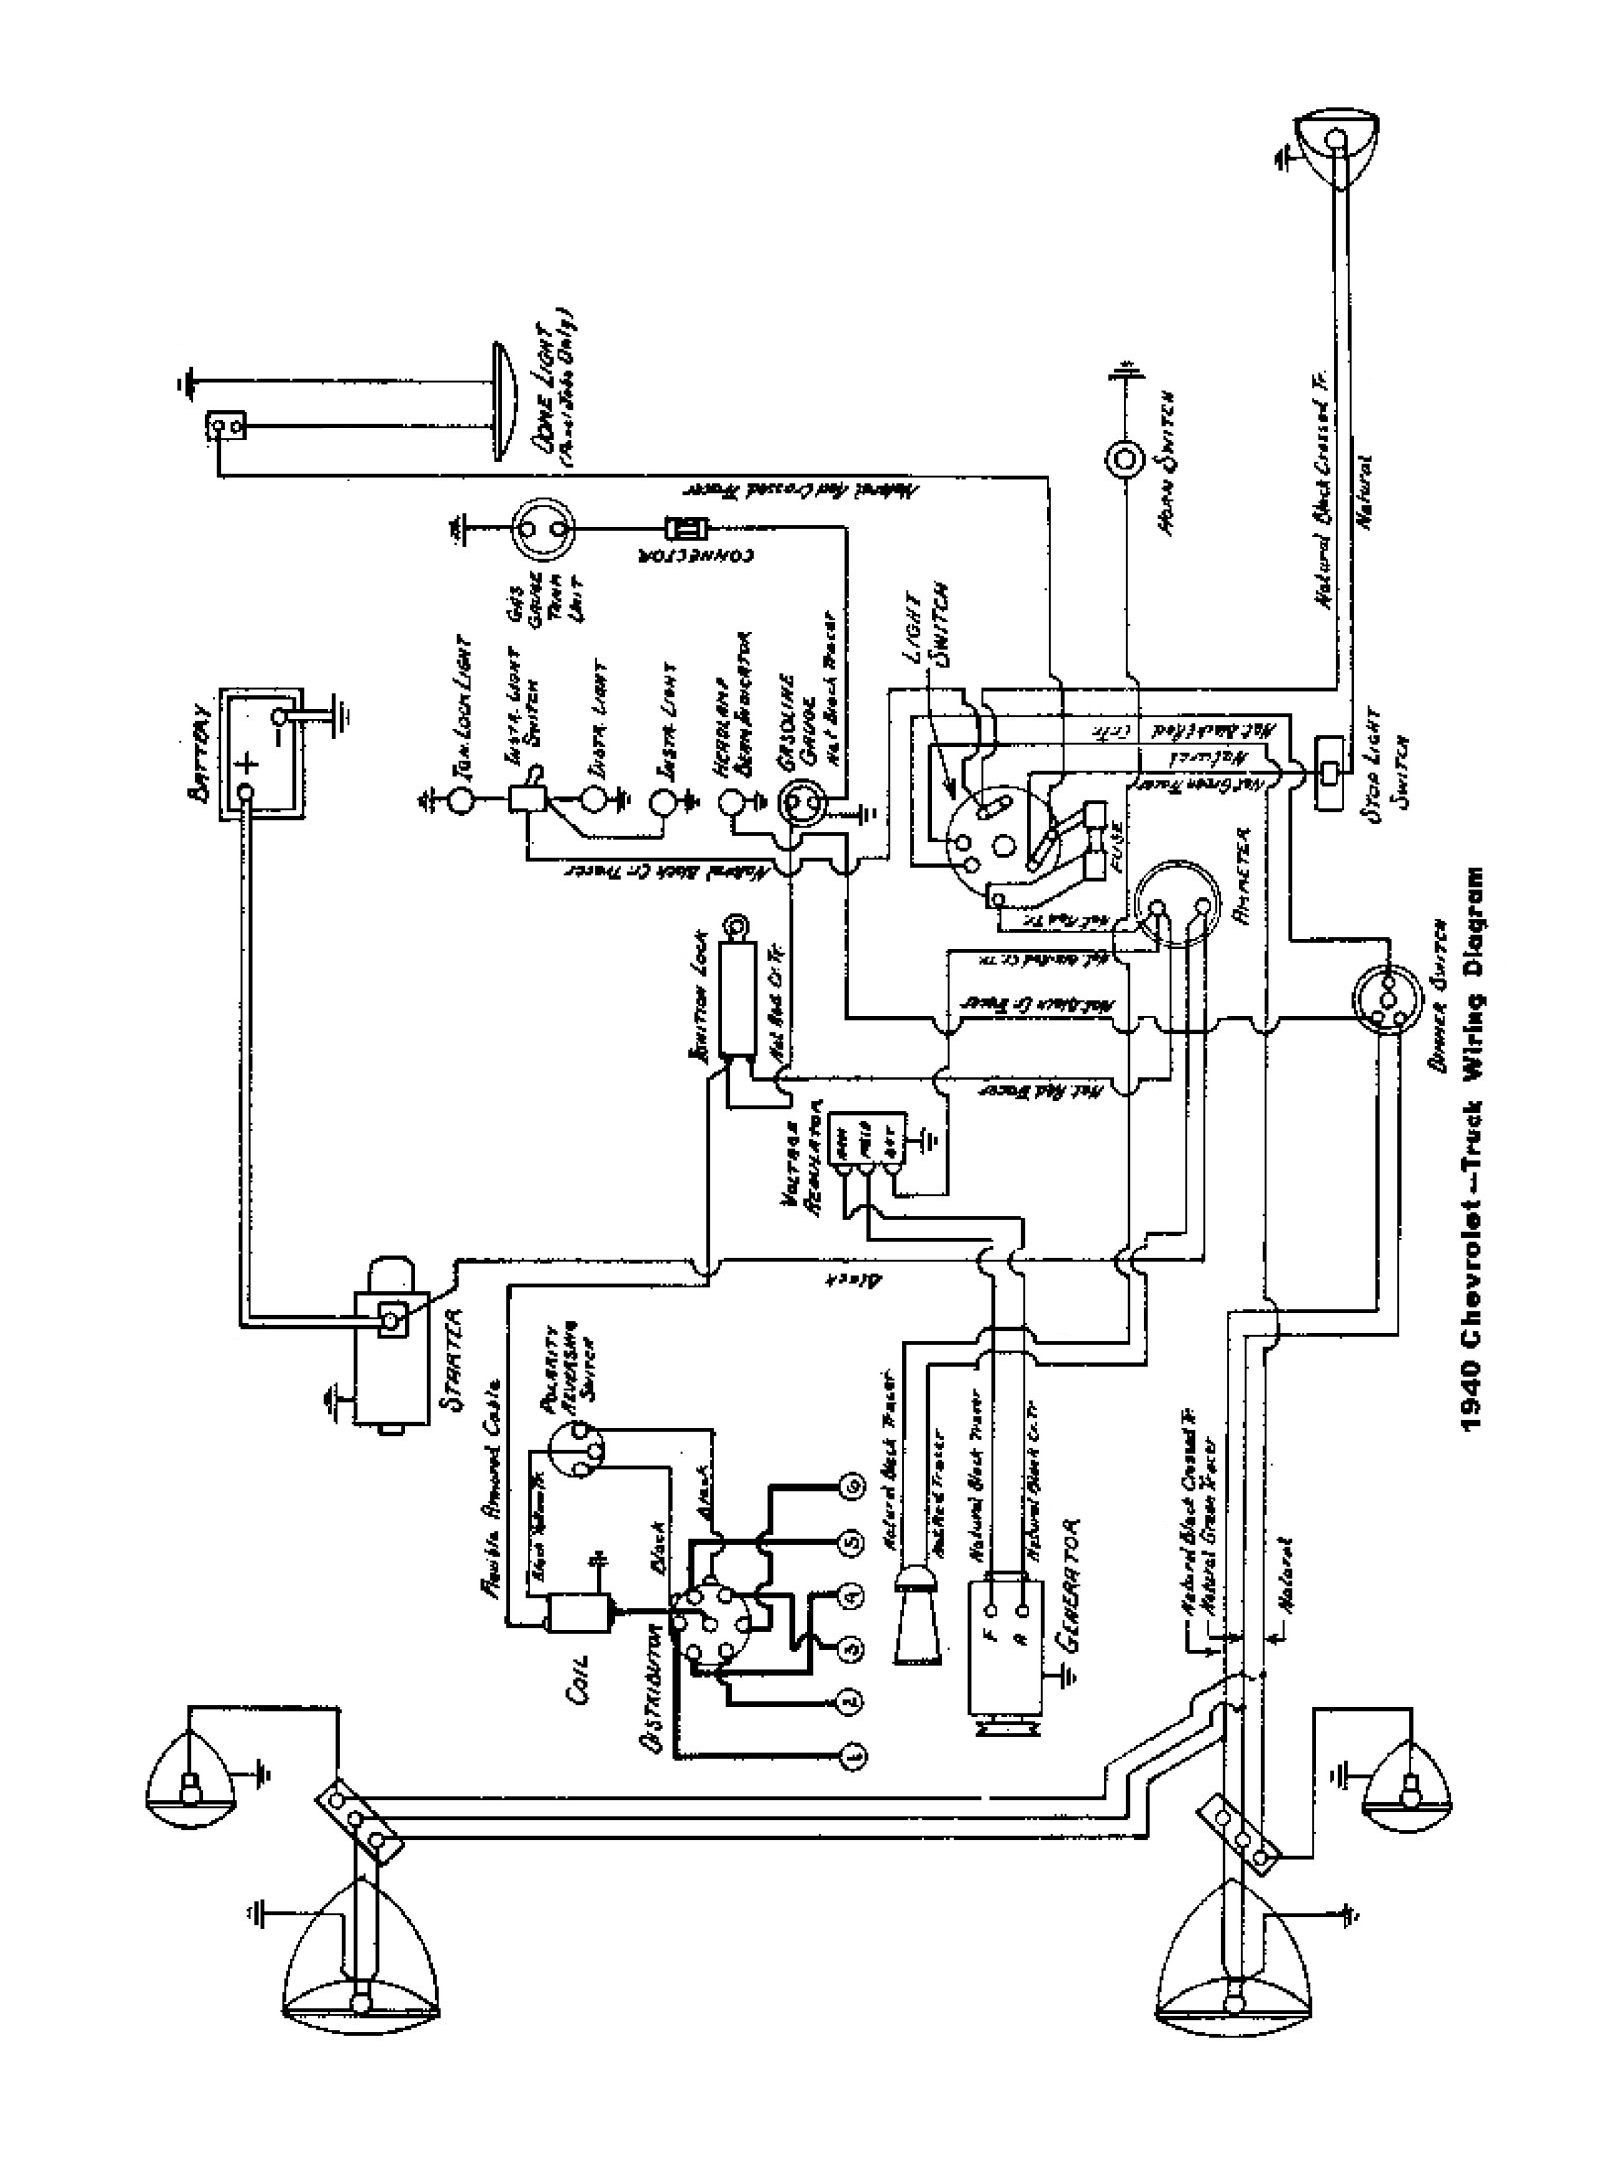 Tanning Bed Wiring Schematic